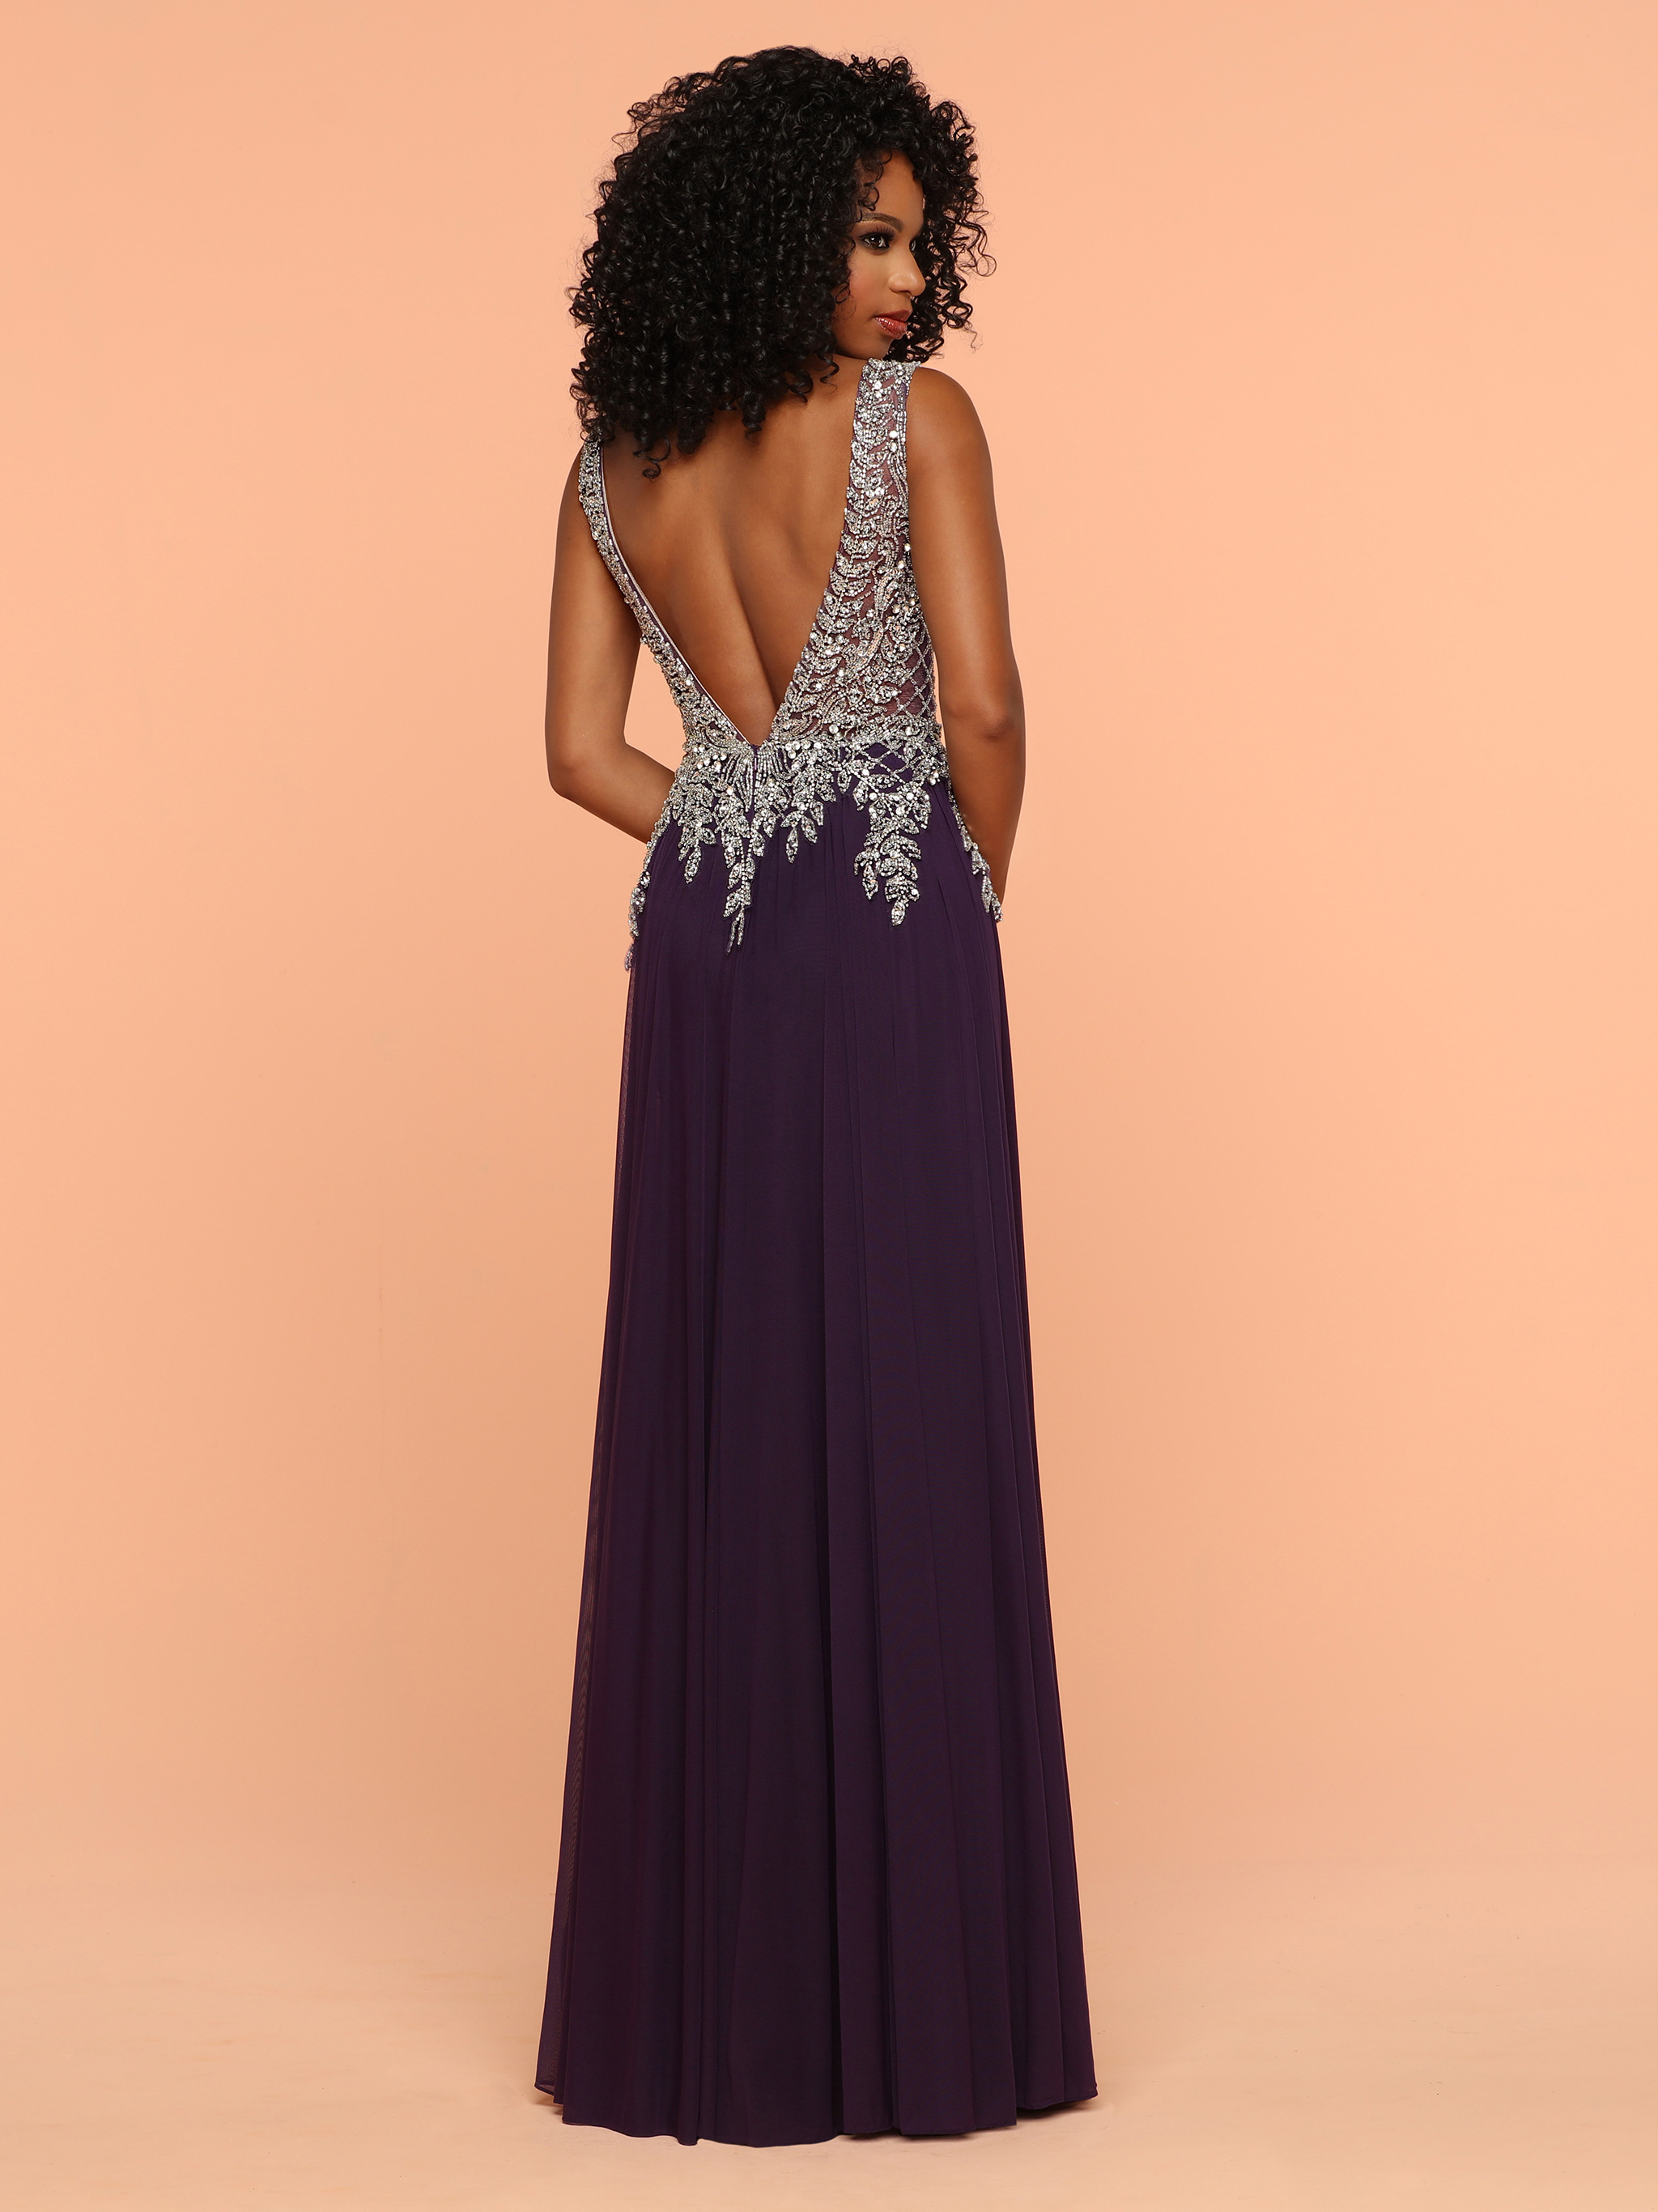 Image showing back view of style #71815